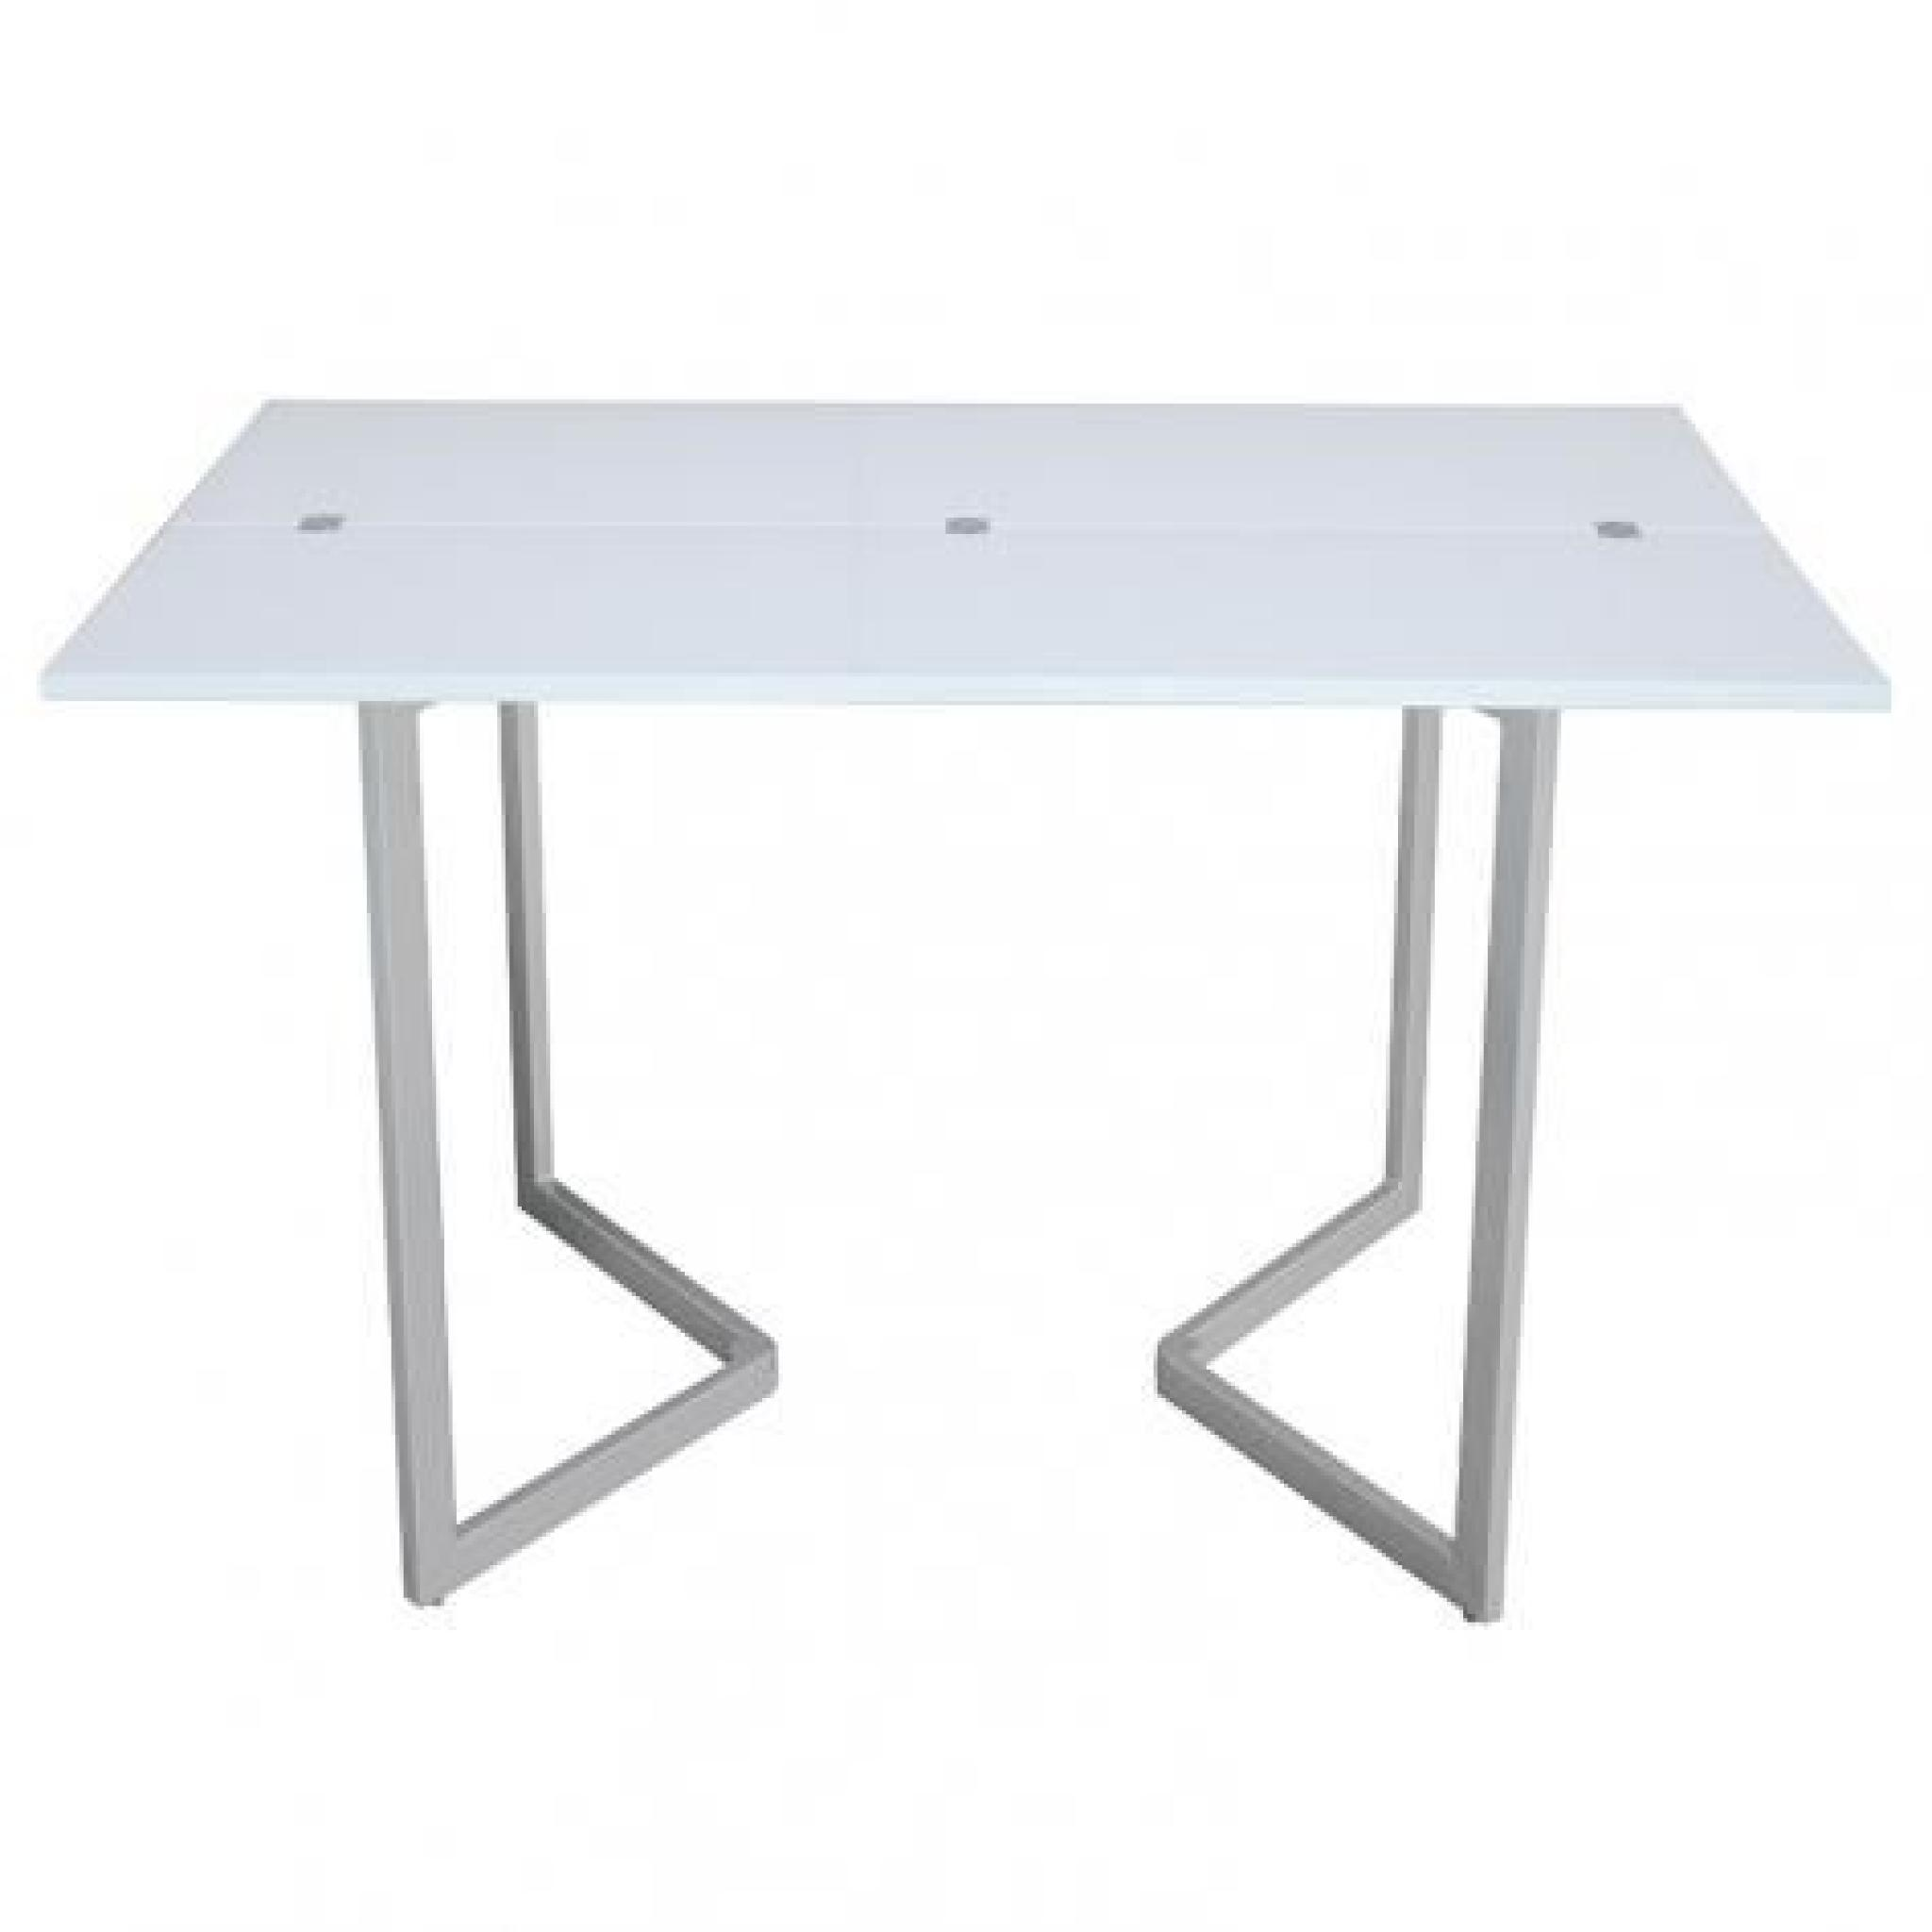 Table console extensible habitat finest table console for Table console extensible 10 personnes